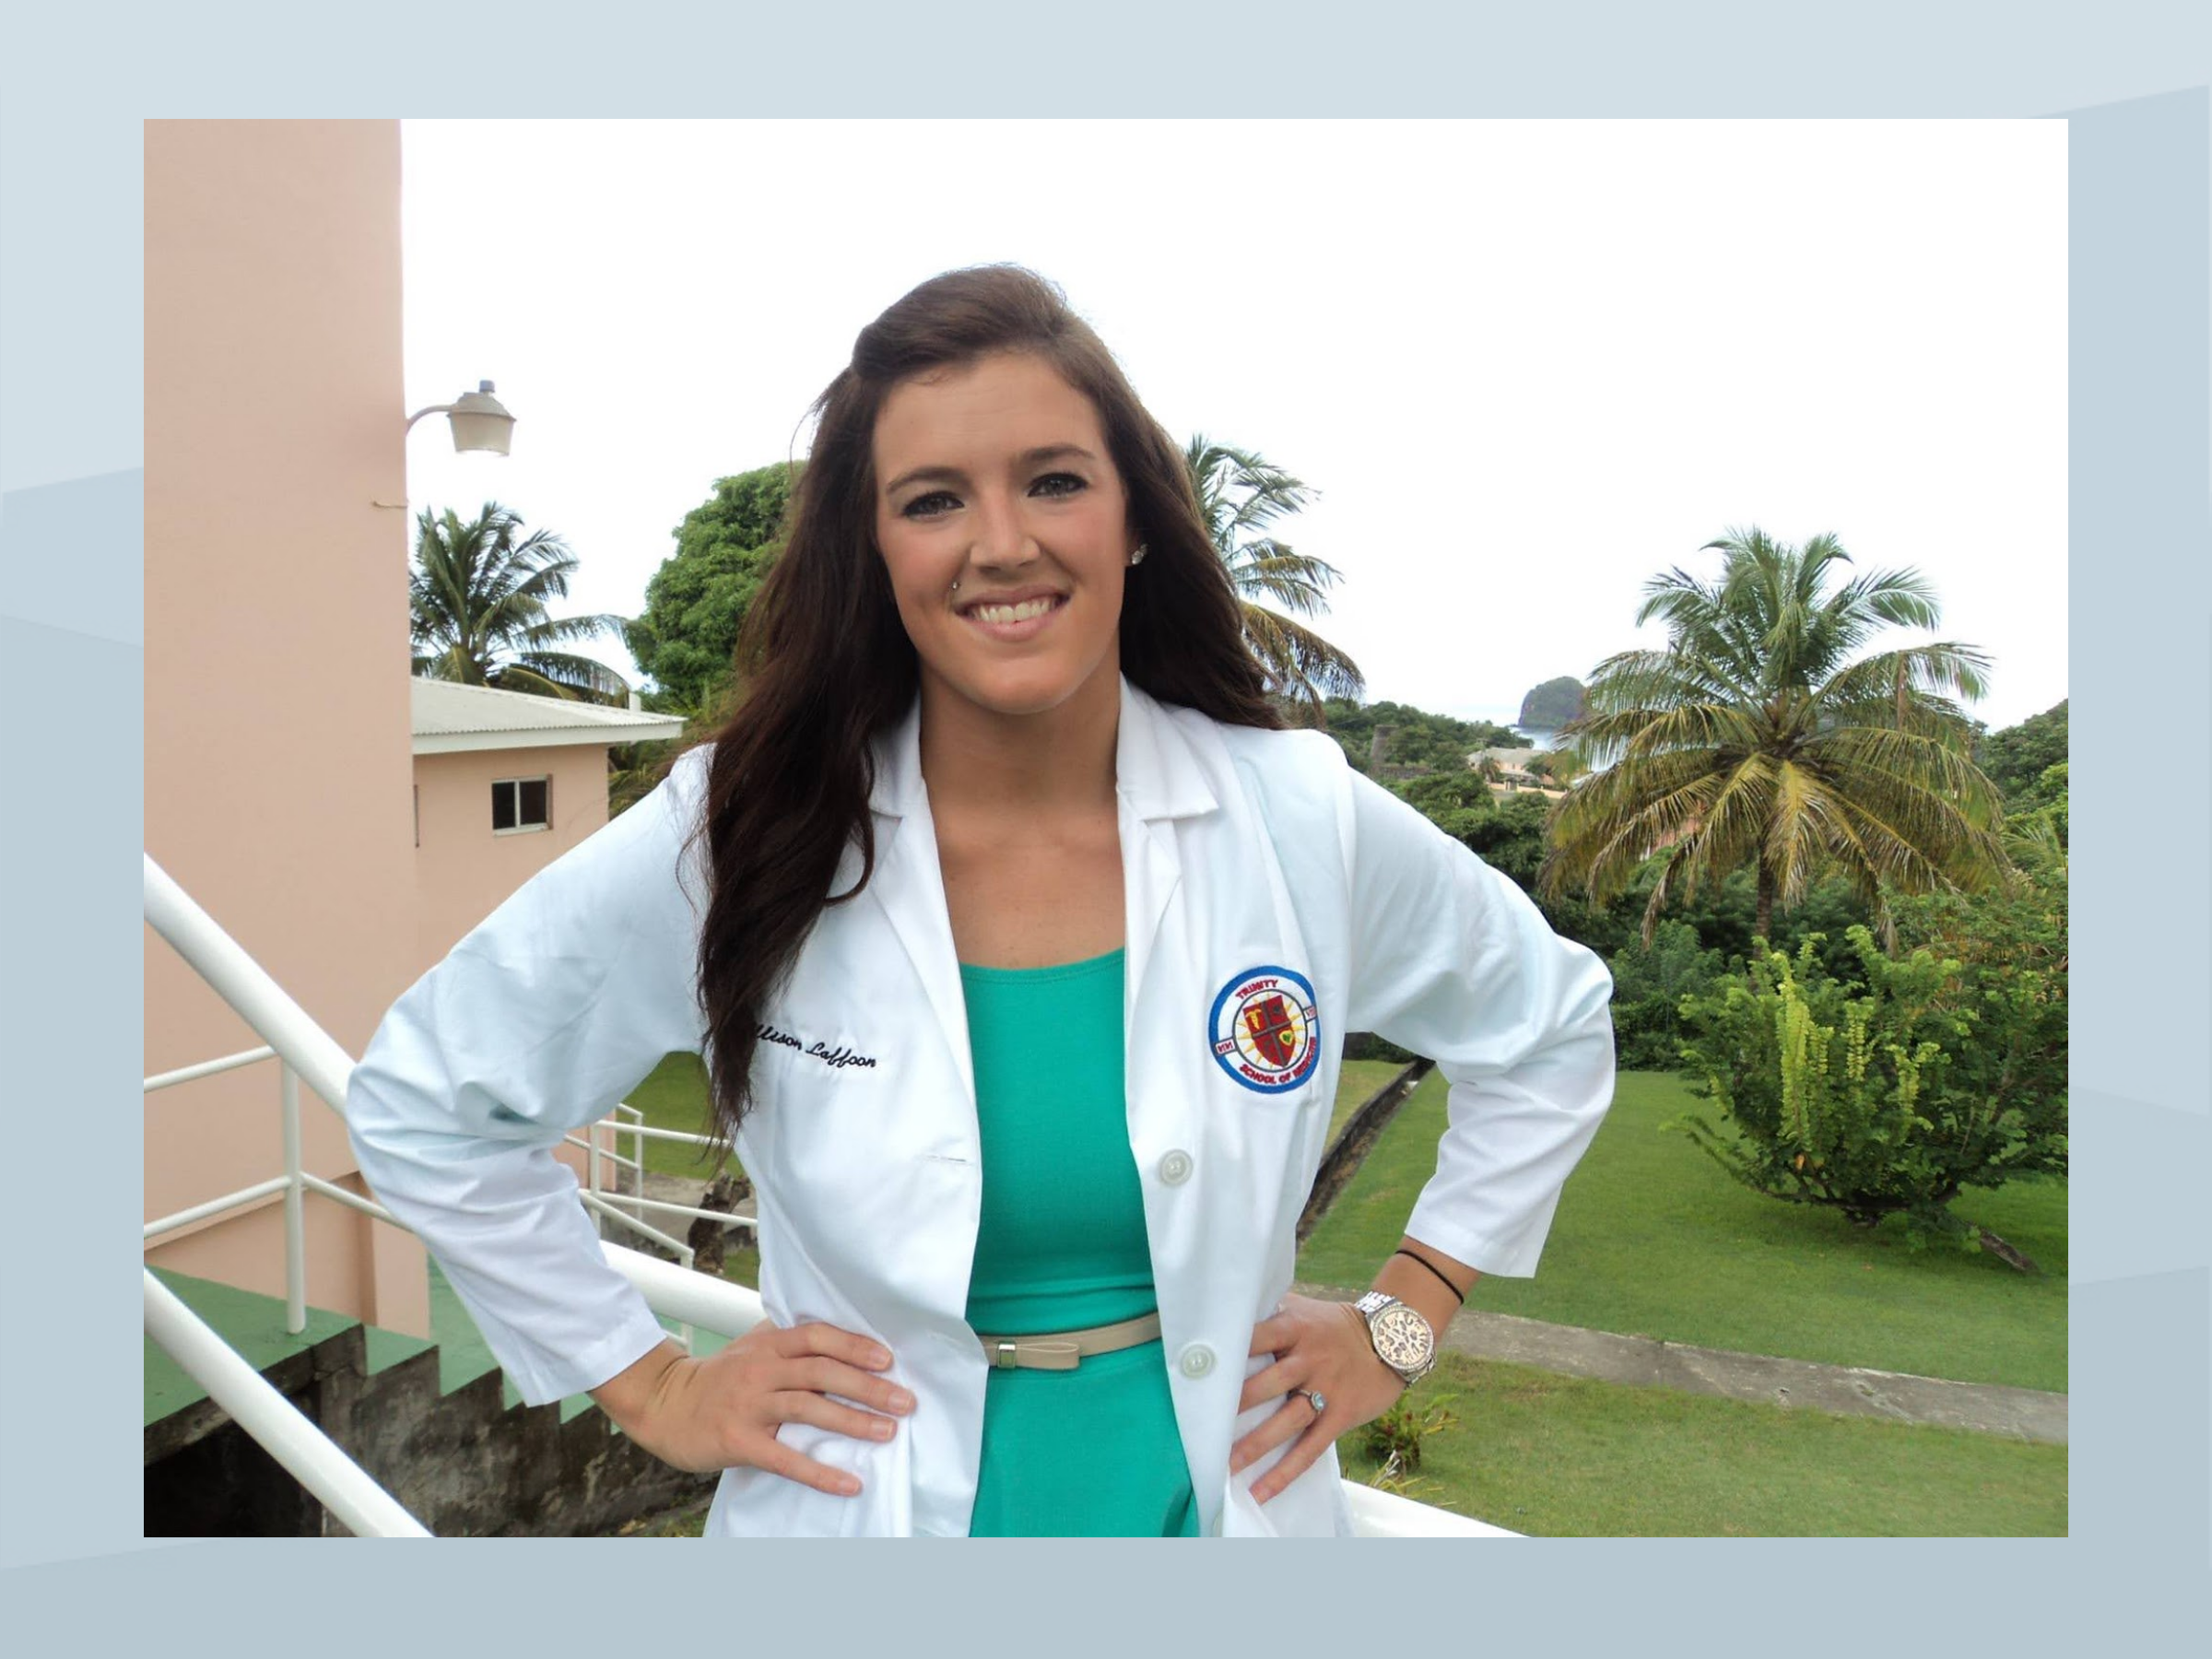 Alumni Spotlight: Dr. Allison Laffoon